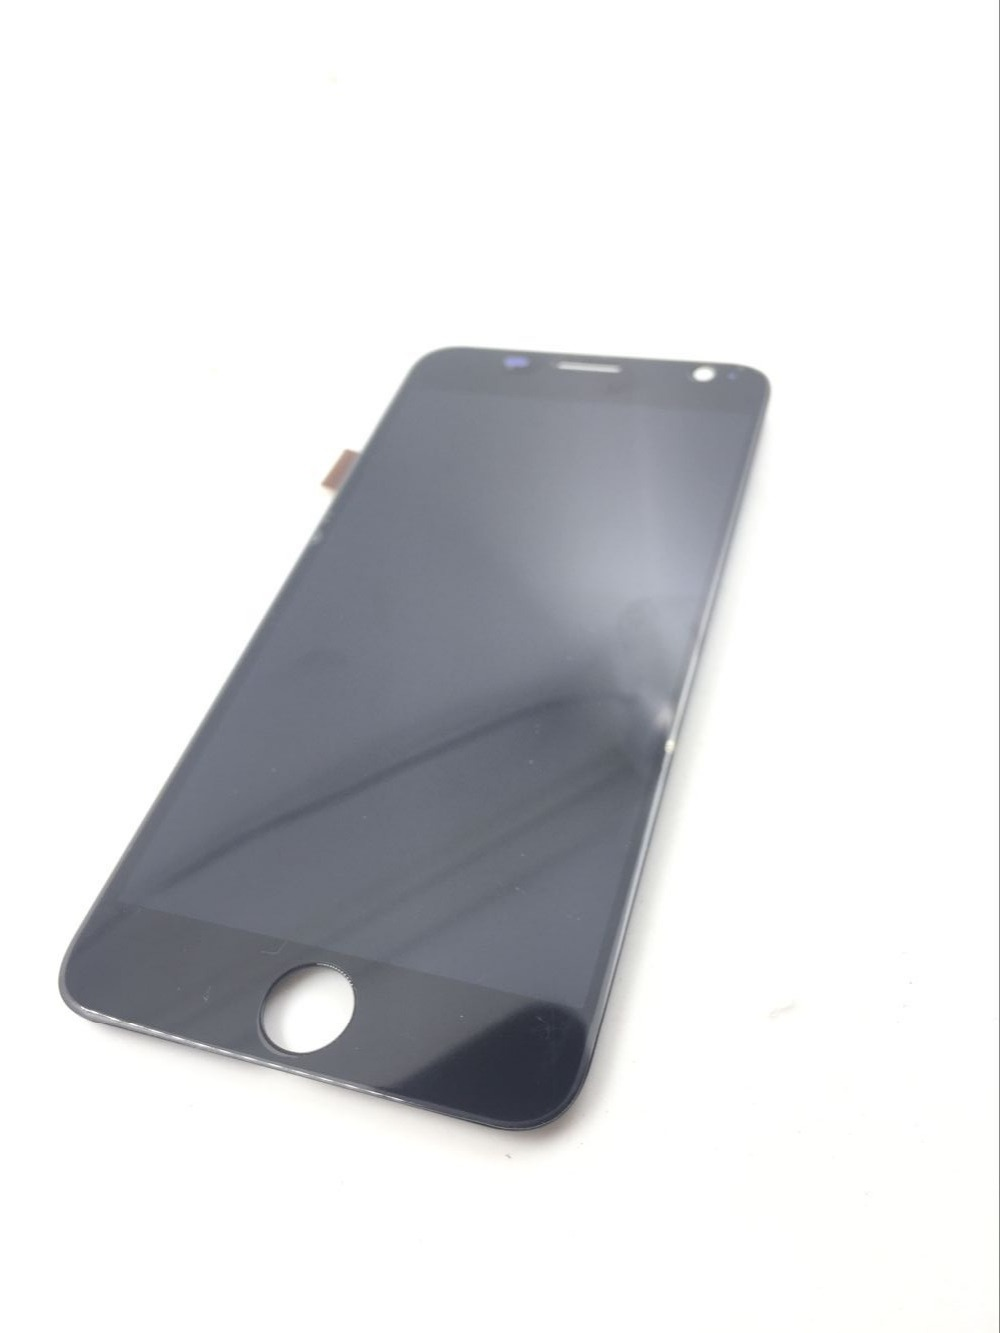 5.0 LCD Display + Touch screen For Prestigio Grace R7 PSP7501DUO psp 7501 duo pas7501 digitizer panel lens glass Assembly